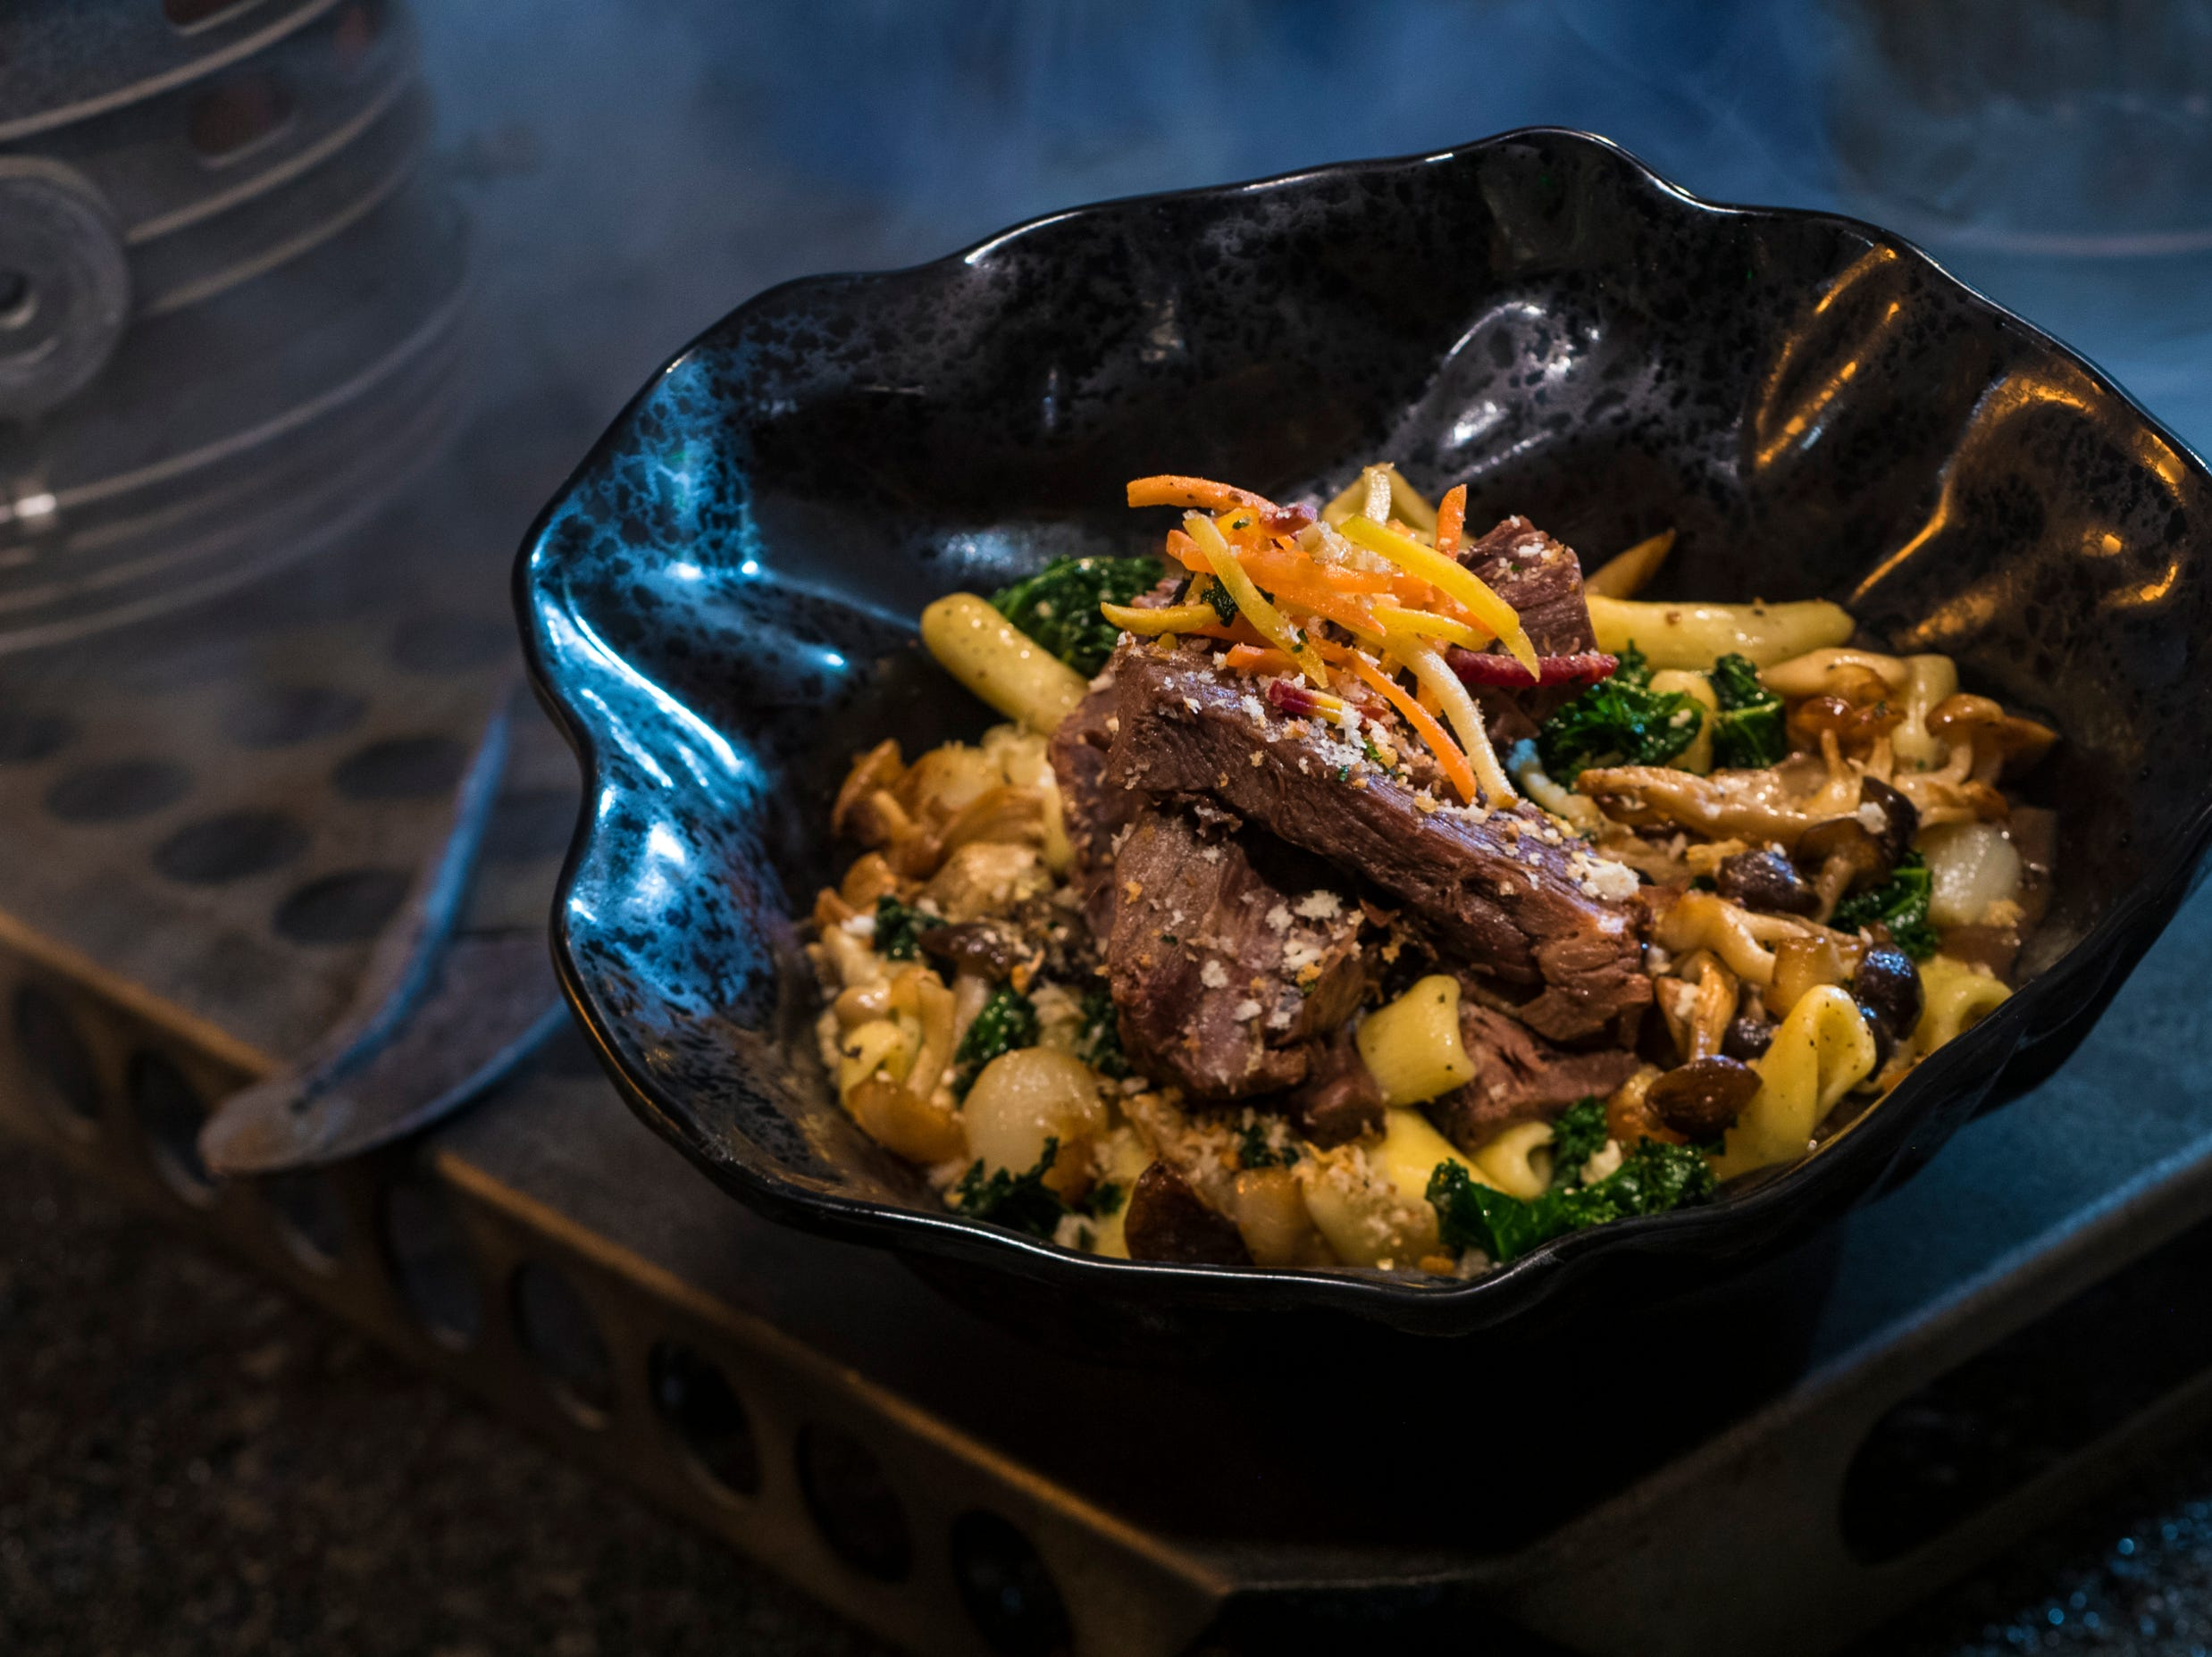 The Braised Shaak Roast, found at Docking Bay 7 Food and Cargo inside Star Wars: Galaxy's Edge, features beef pot roast with cavatelli pasta, kale and mushrooms.